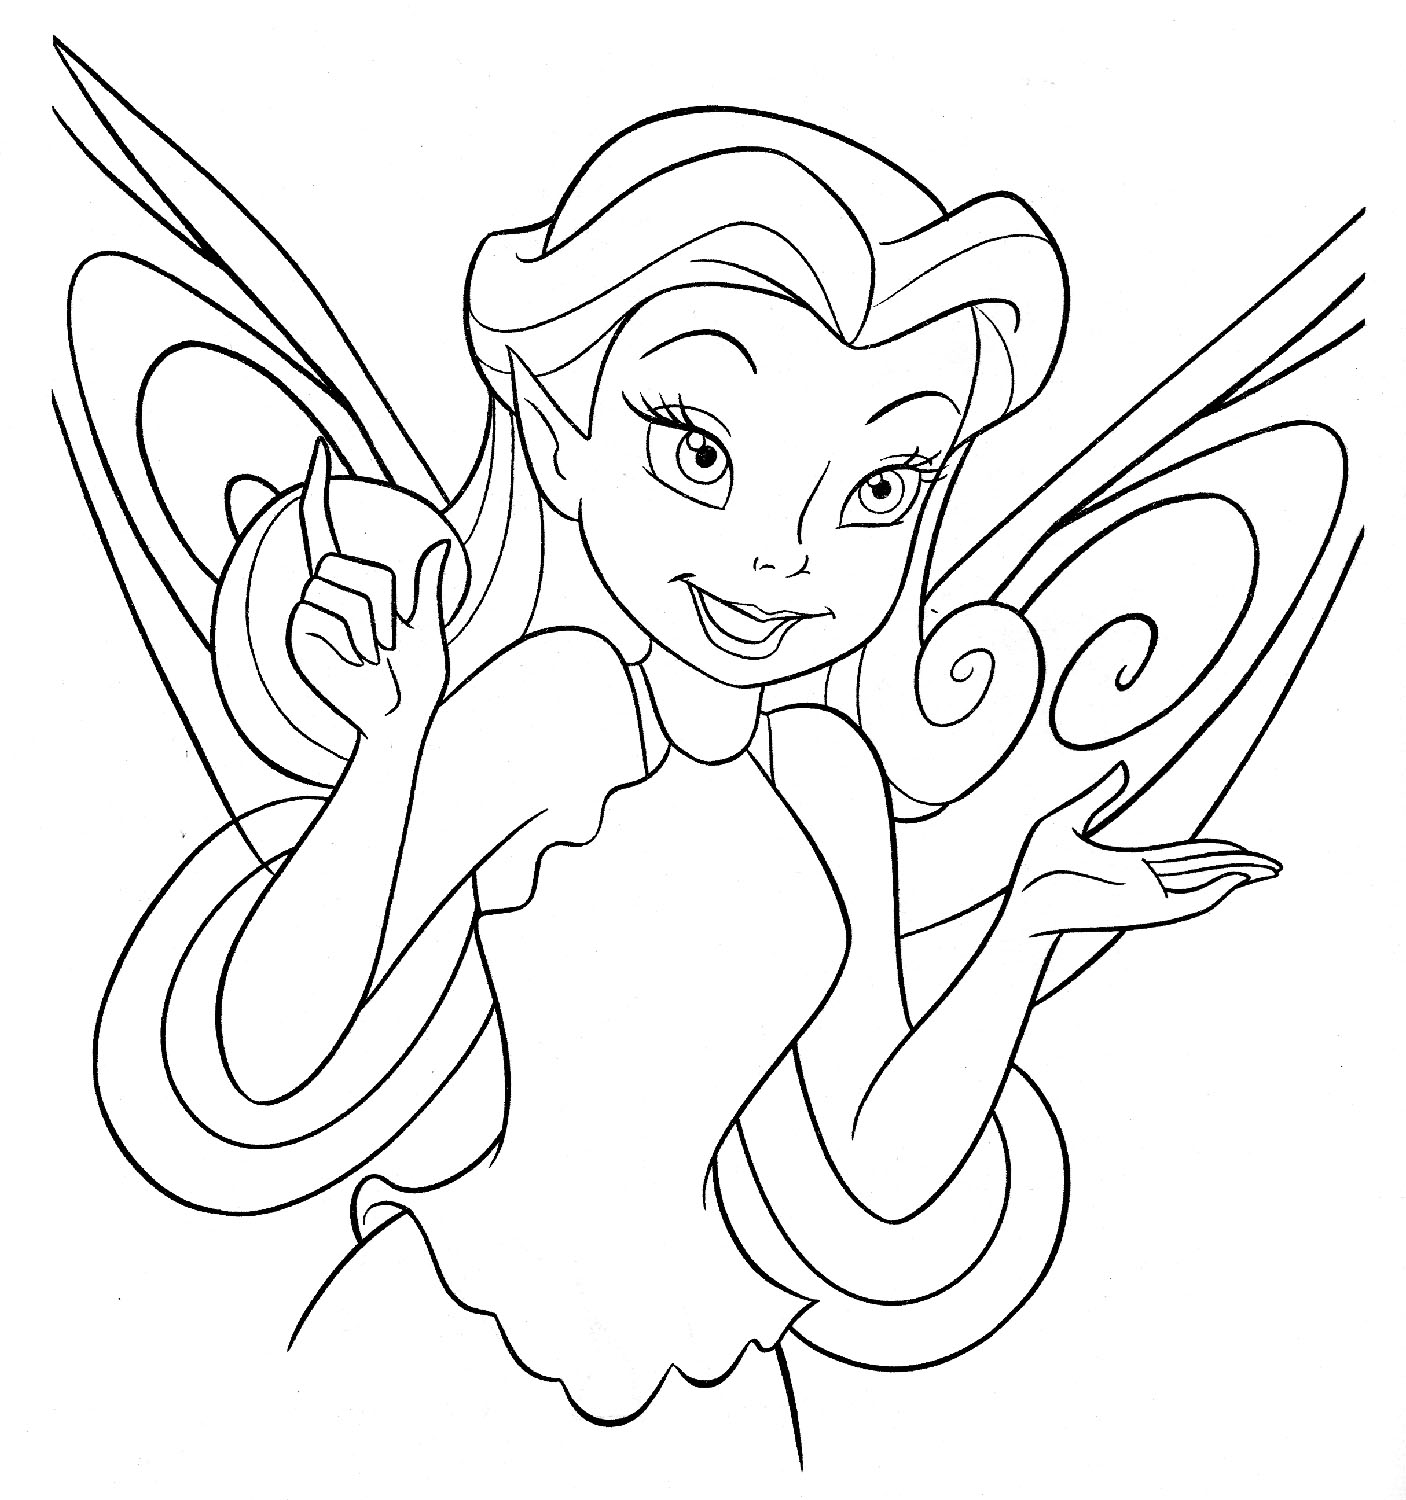 Disney Fairies Coloring Pages Colouring - Coloring Kids